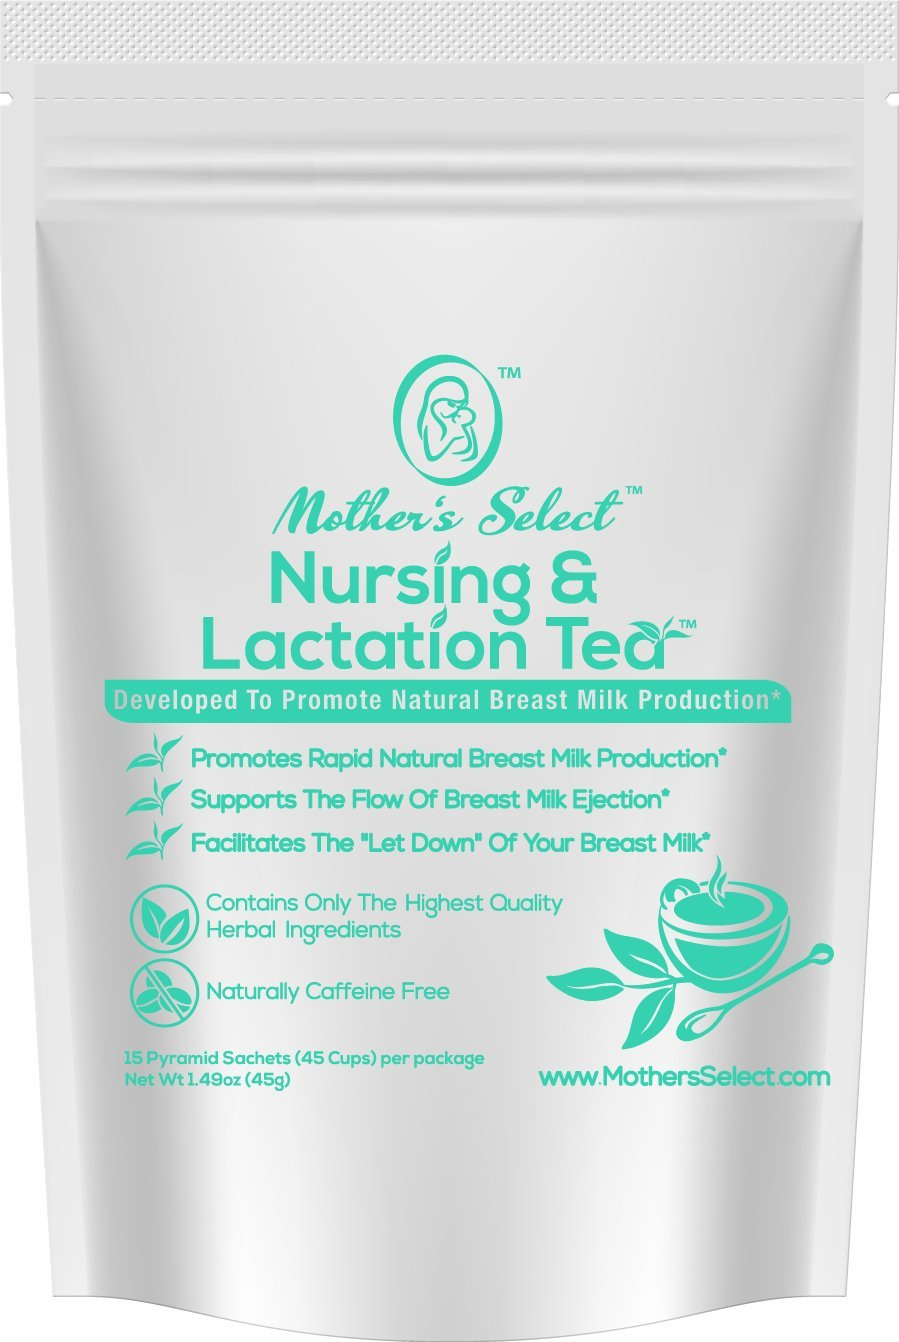 Nursing & Lactation Tea Sachets by Mother's Select to Increase Breast Milk Supply, All Natural, Caffeine-Free Nursing Tea Bags, with Fenugreek, Blessed Thistle, Fennel Seed & More for Breastfeeding! by Mama's Select